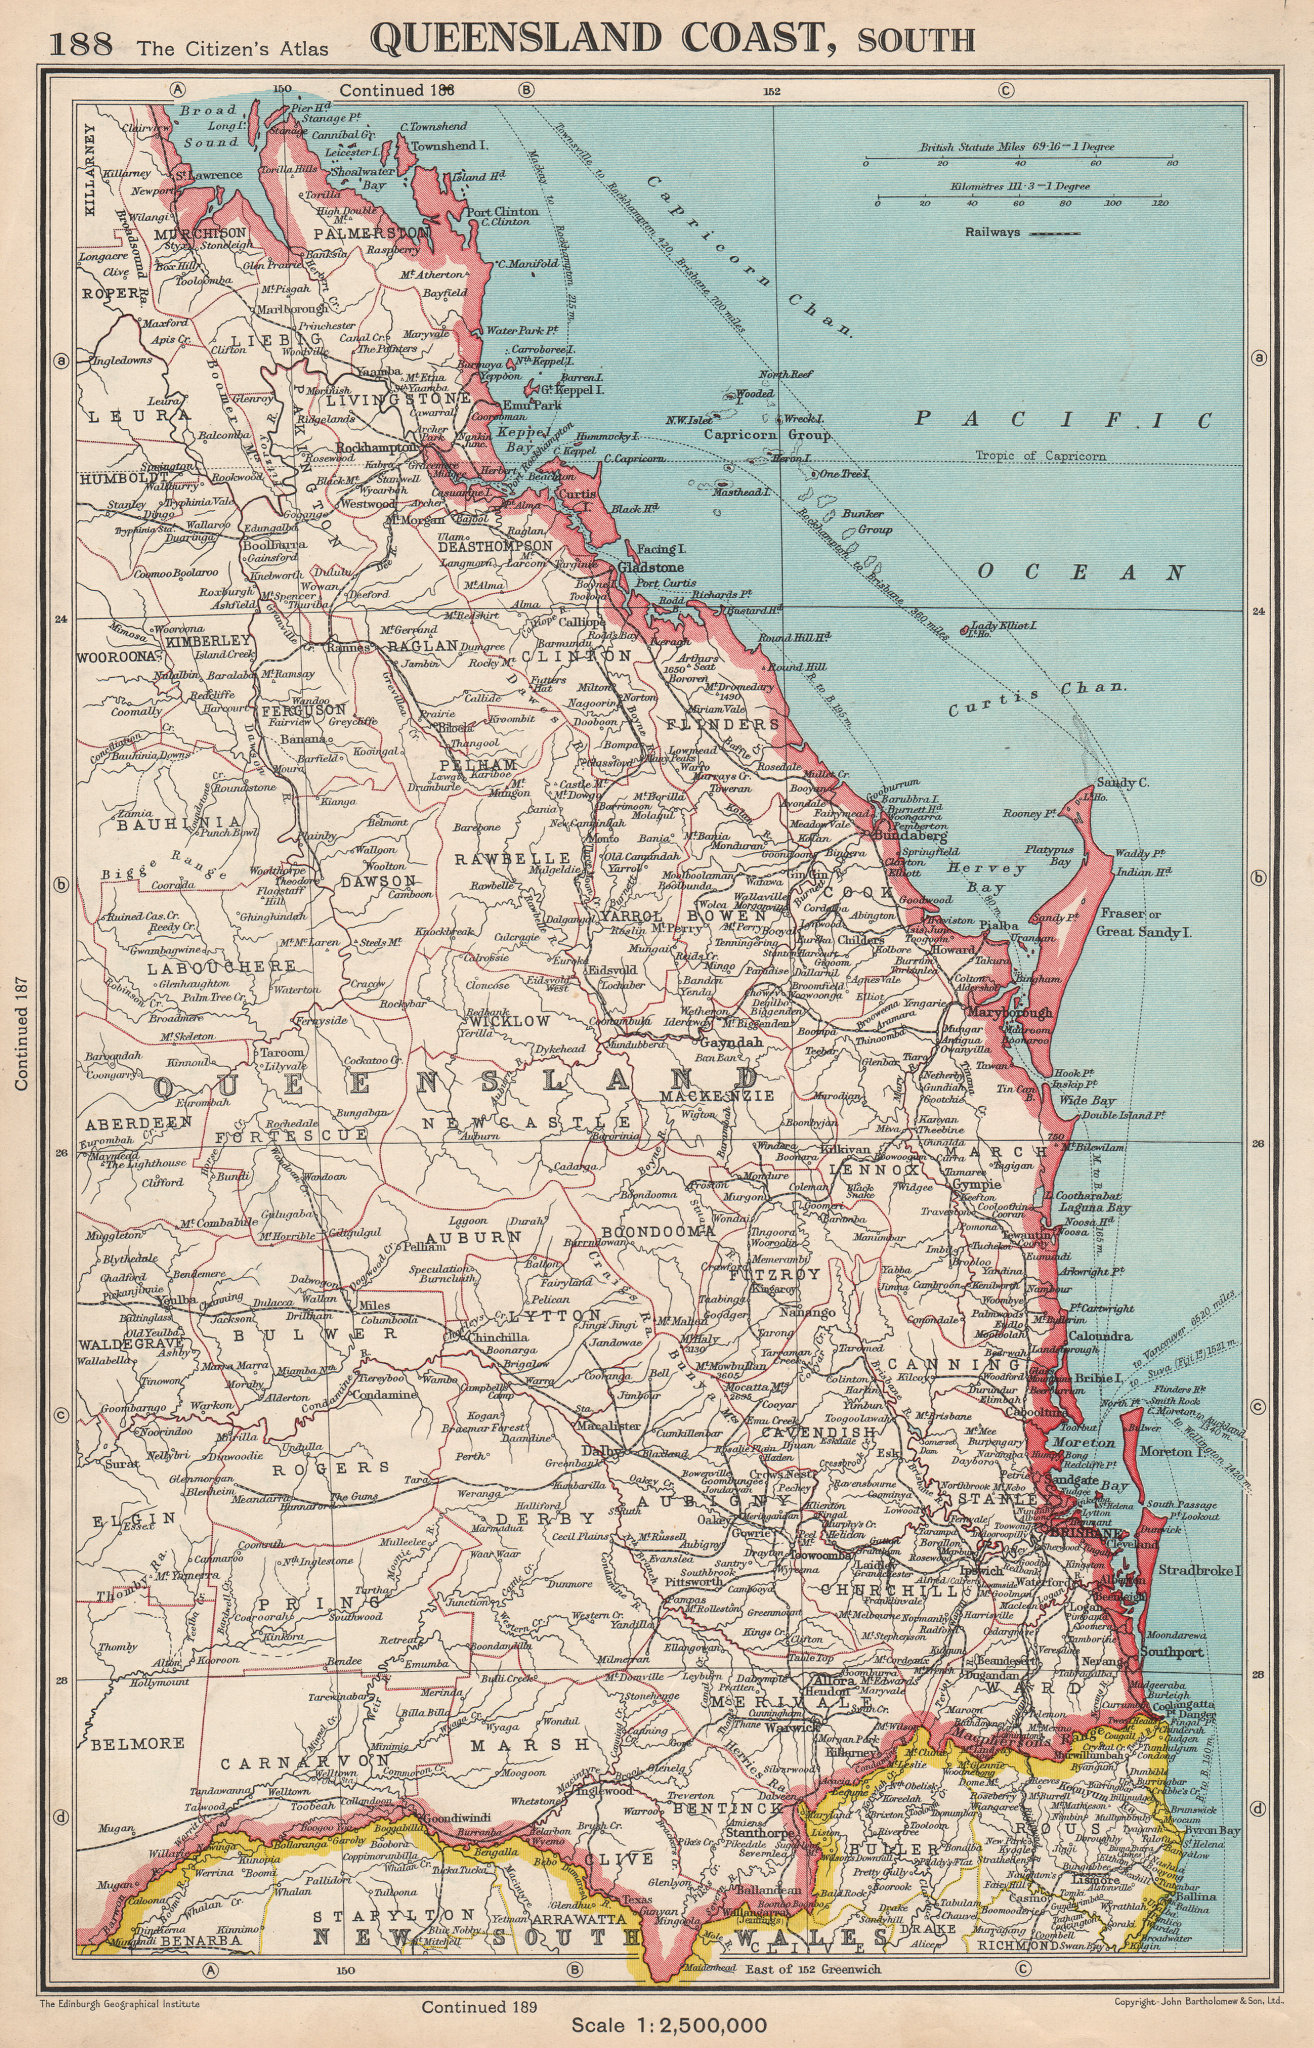 Associate Product QUEENSLAND COAST, SOUTH. showing counties. BARTHOLOMEW 1952 old vintage map